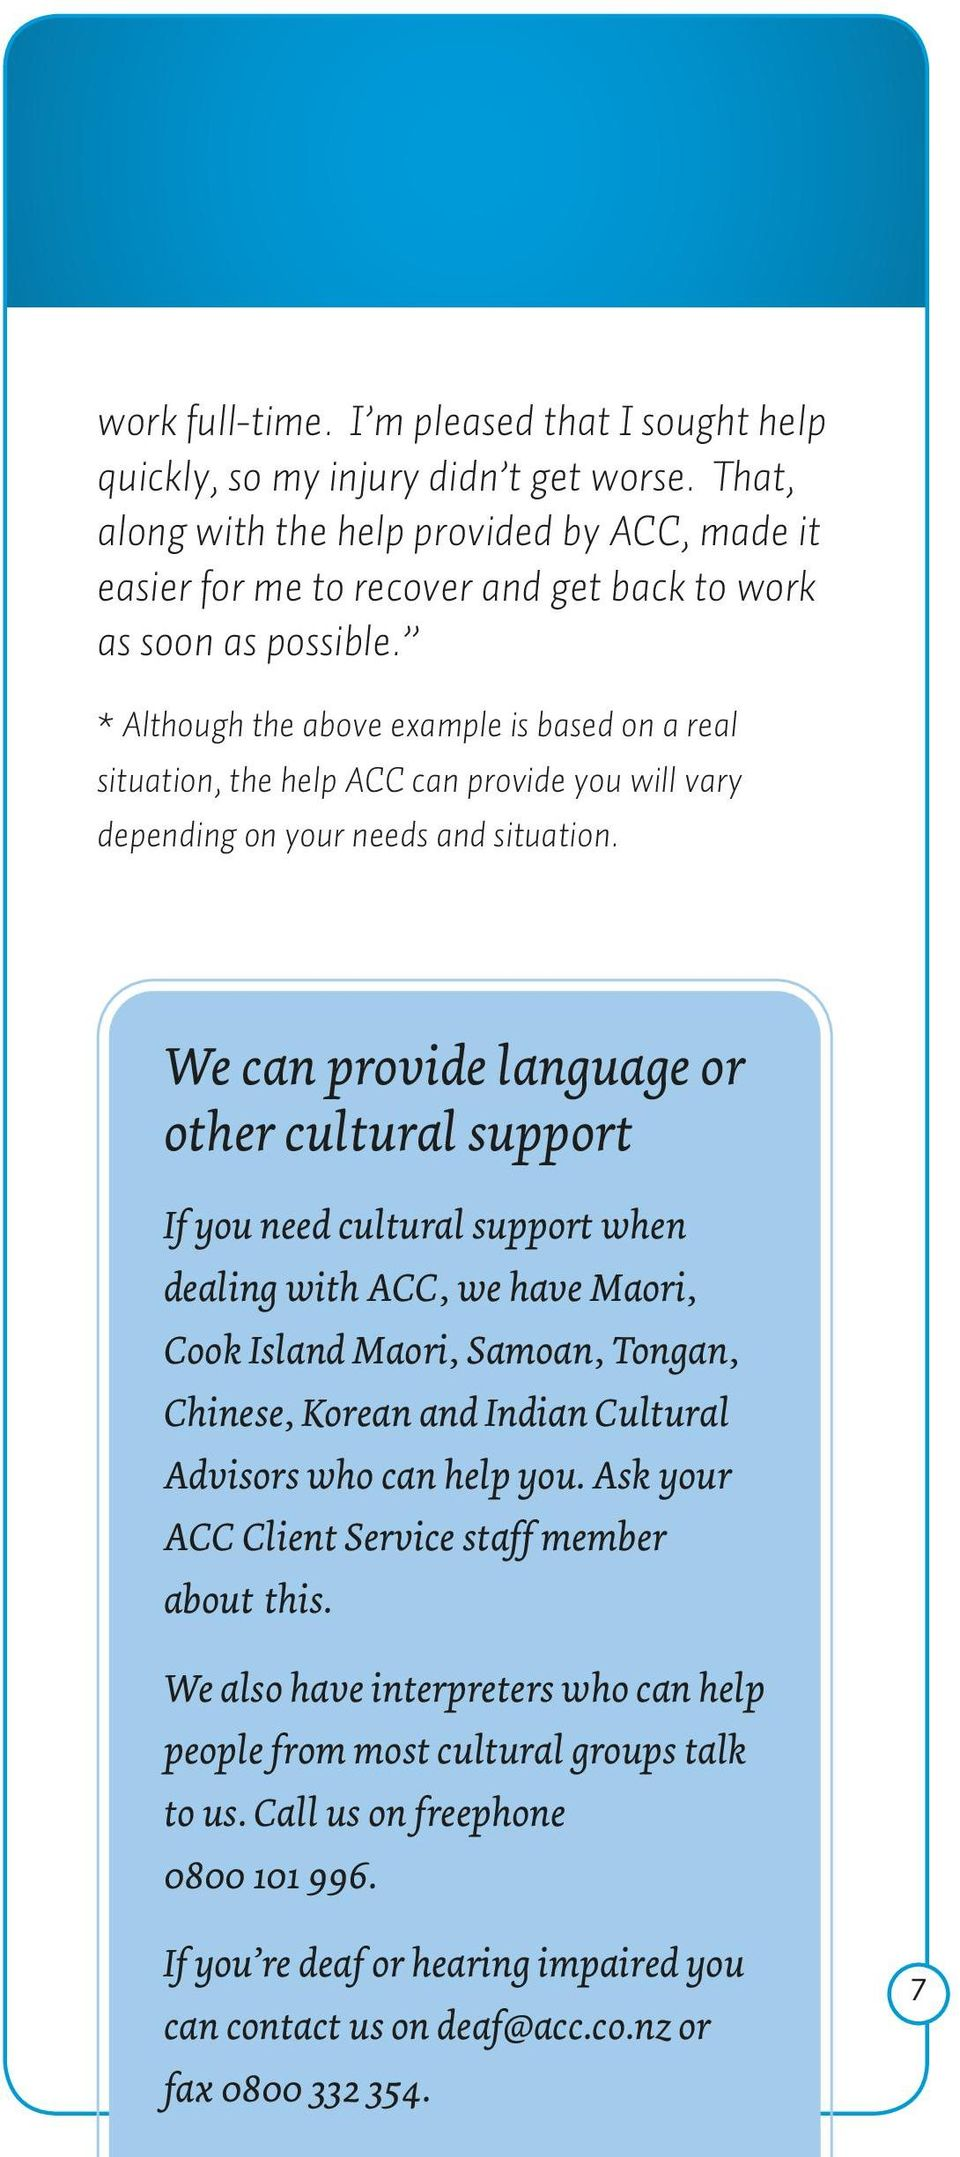 * Although the above example is based on a real situation, the help ACC can provide you will vary depending on your needs and situation.